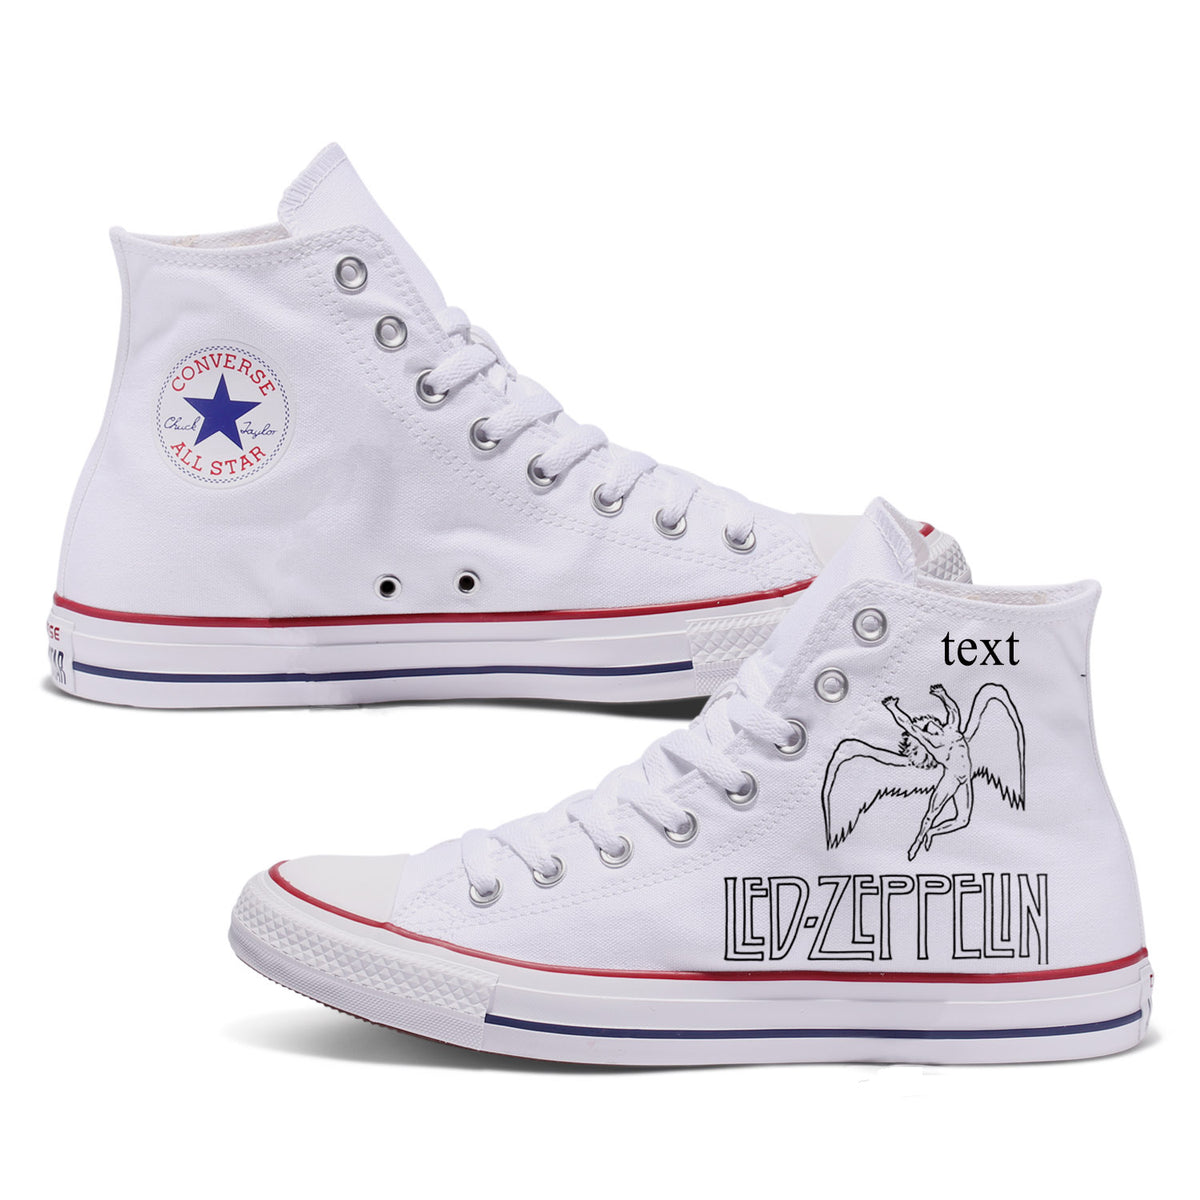 Led Zeppelin Custom Converse